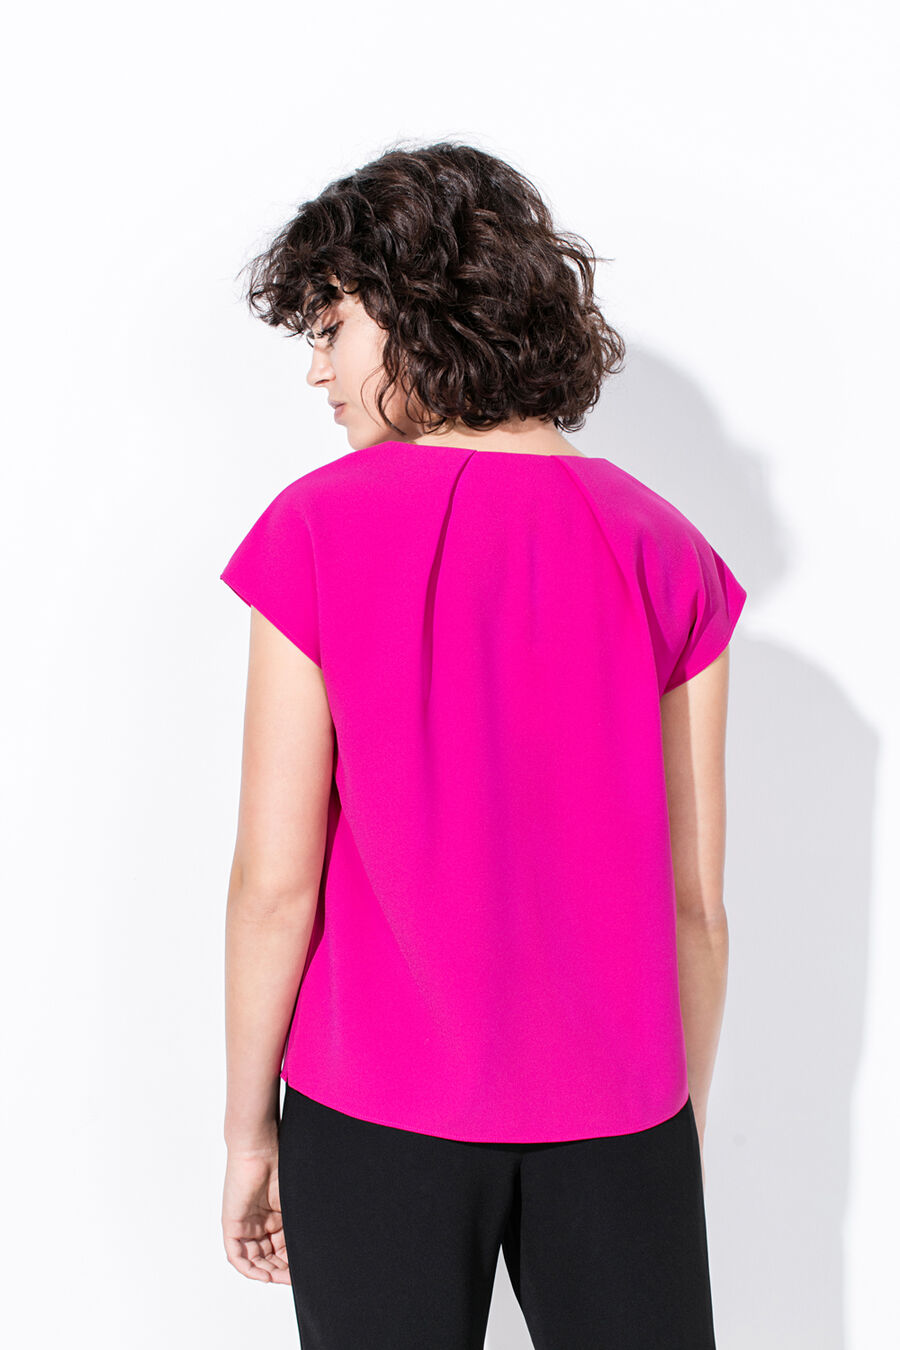 Draped blouse with button